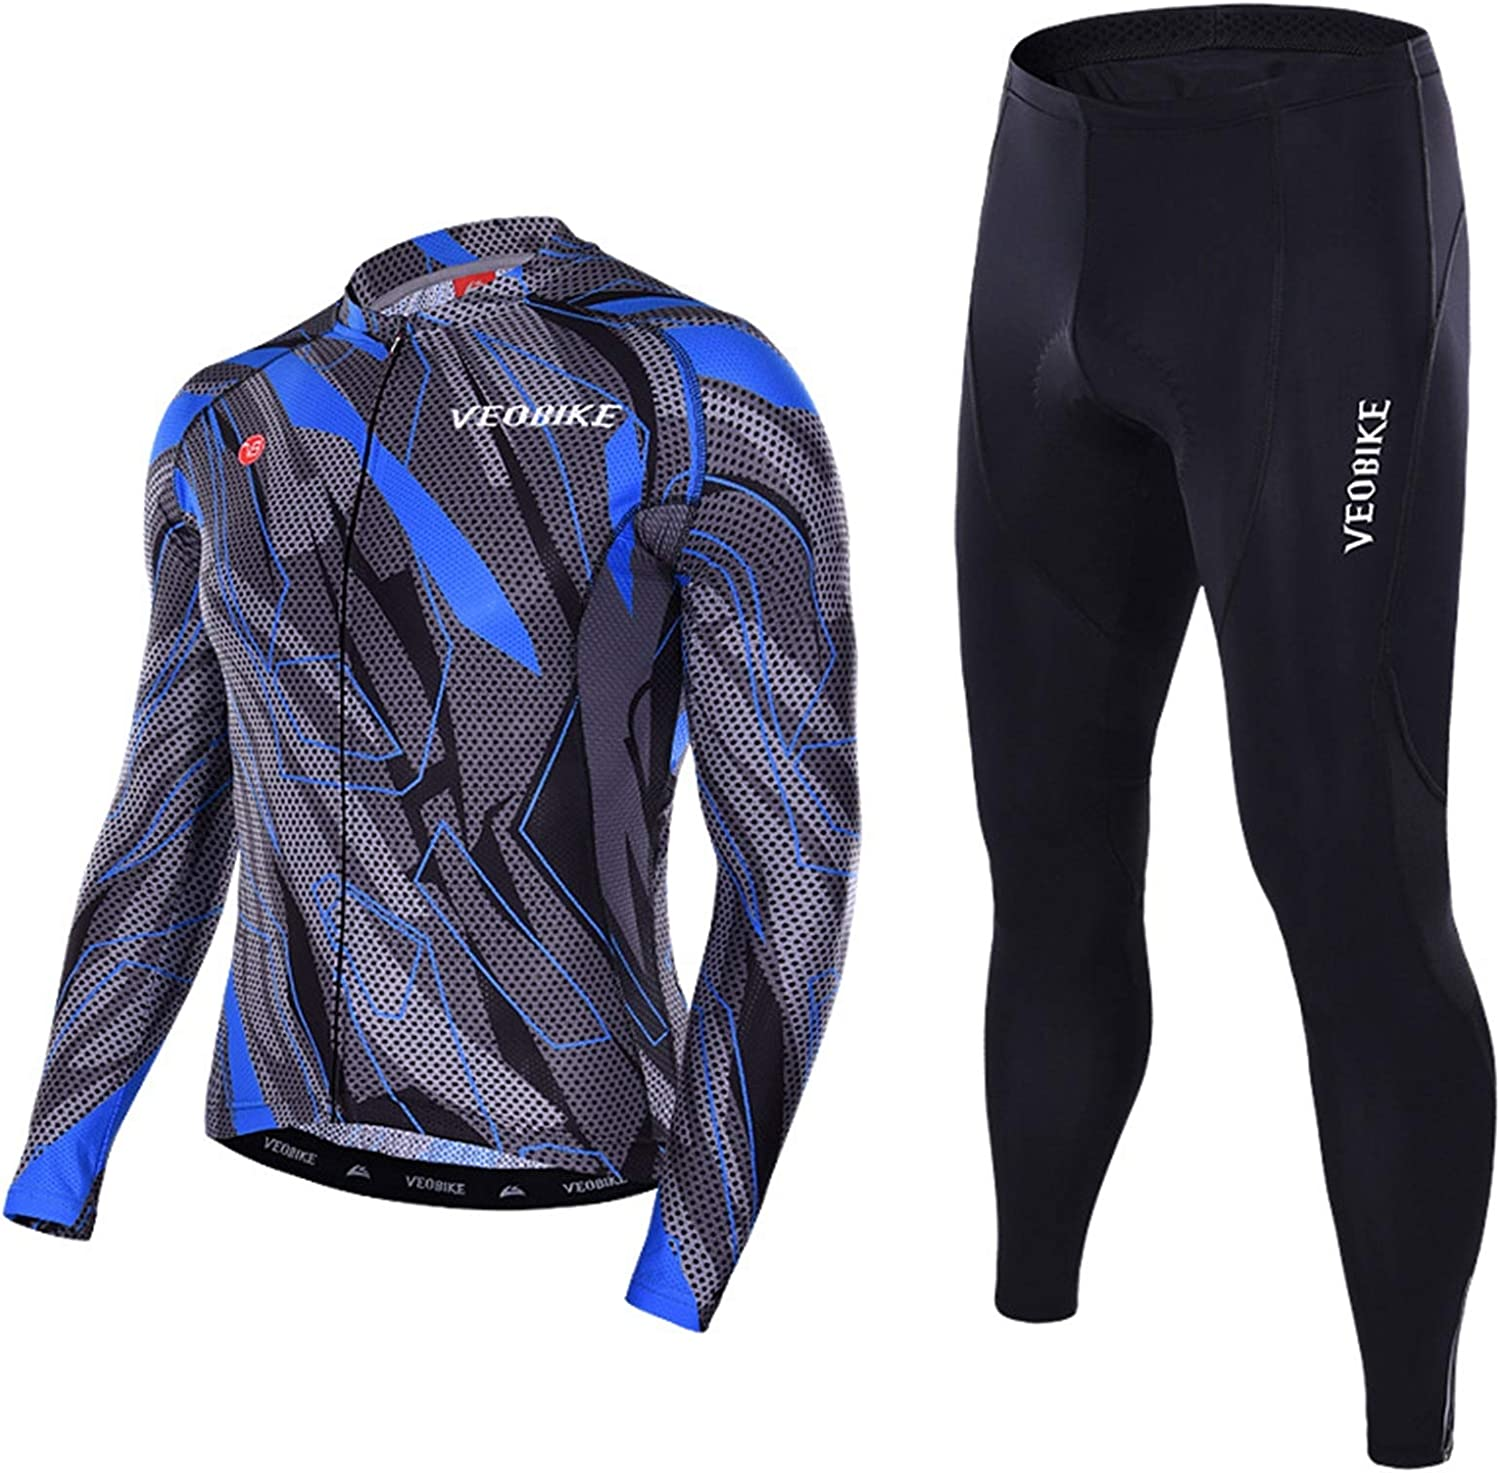 Epinki Men Spring Autumn Summer Cycling Jersey for Outdoor and Multi Sports Bike Clothing Cyclist Riding